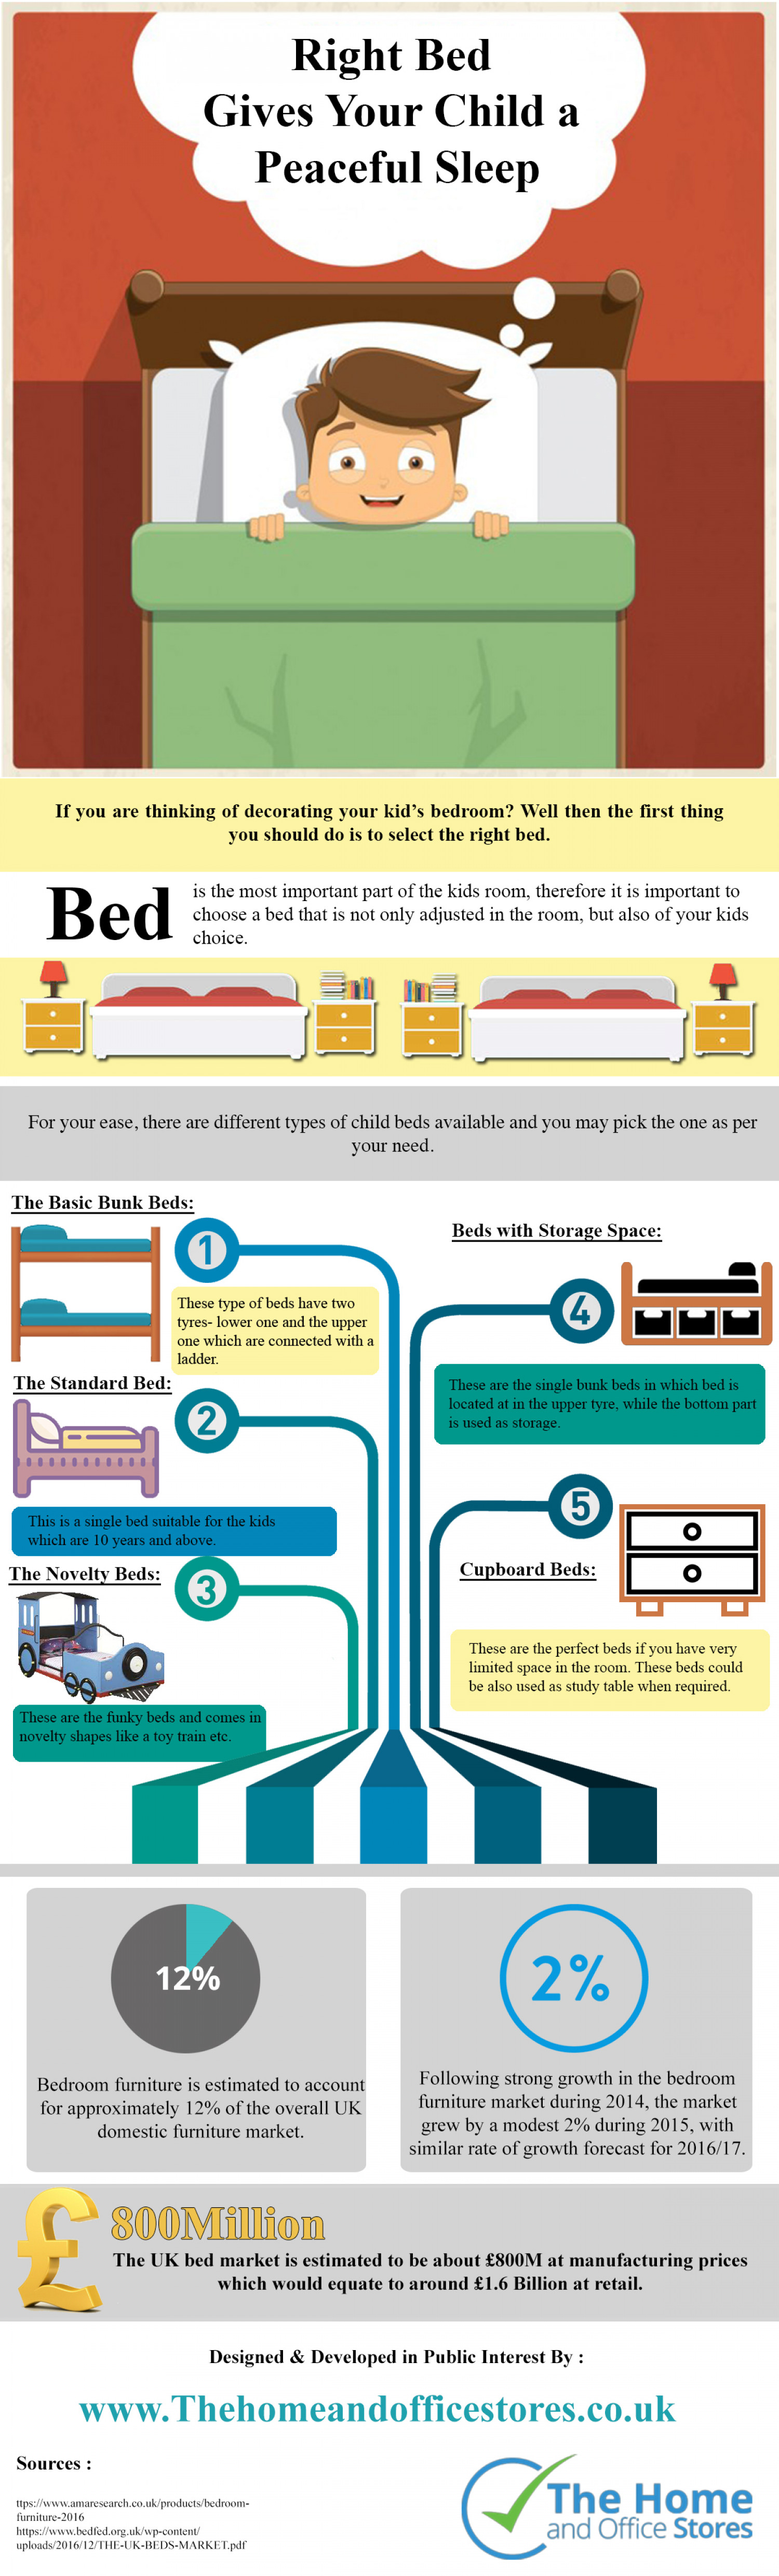 Right Bed Gives Your Child a Peaceful Sleep Infographic